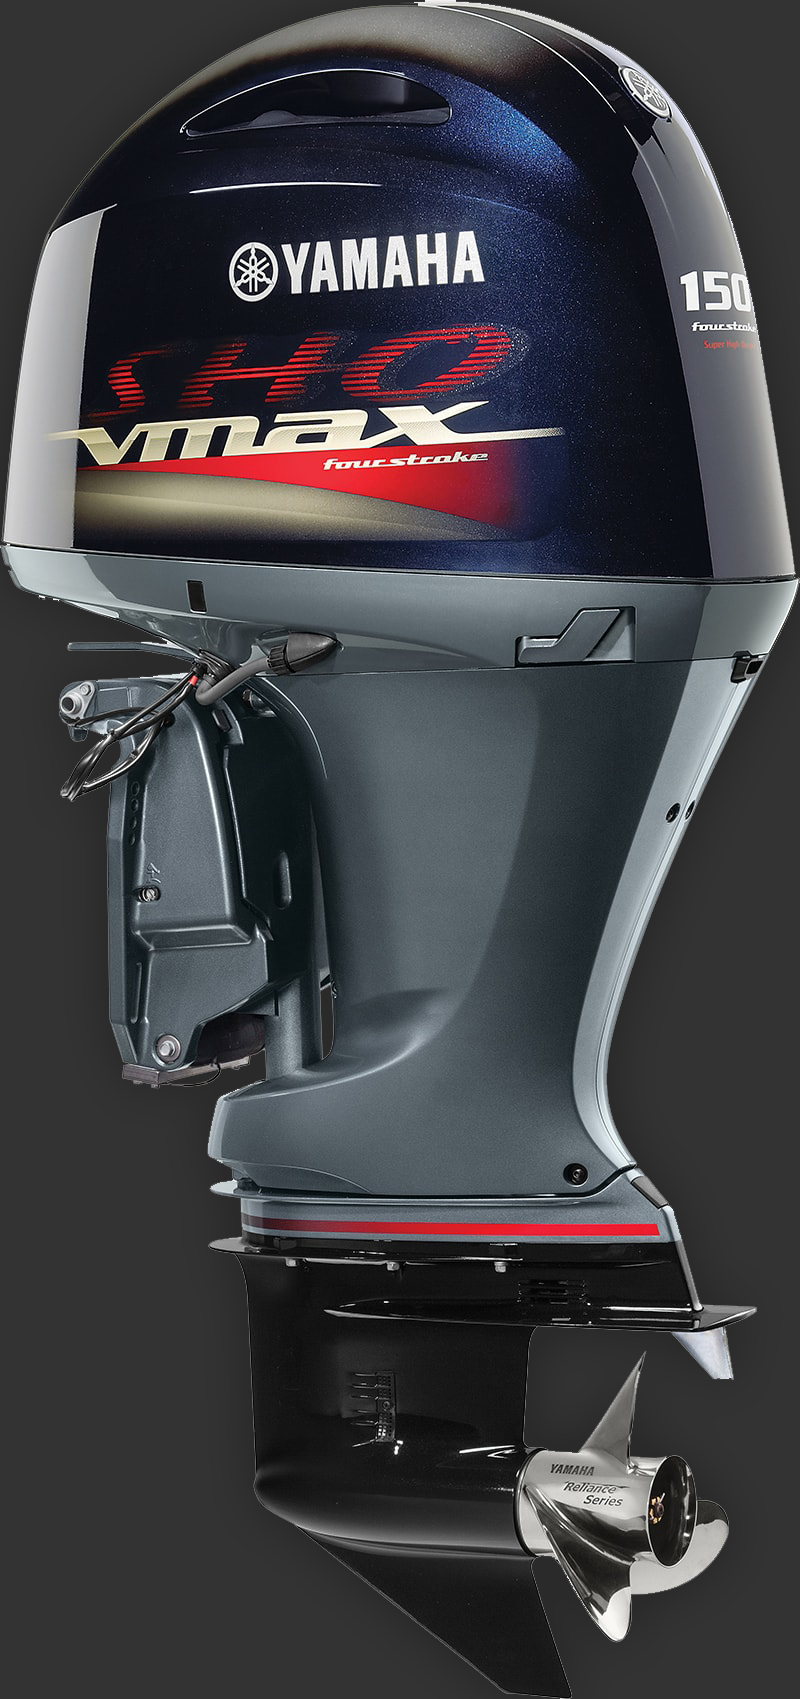 V Max In Line 4 Yamaha Outboards 150 Outboard Wiring Vmaxi4 20